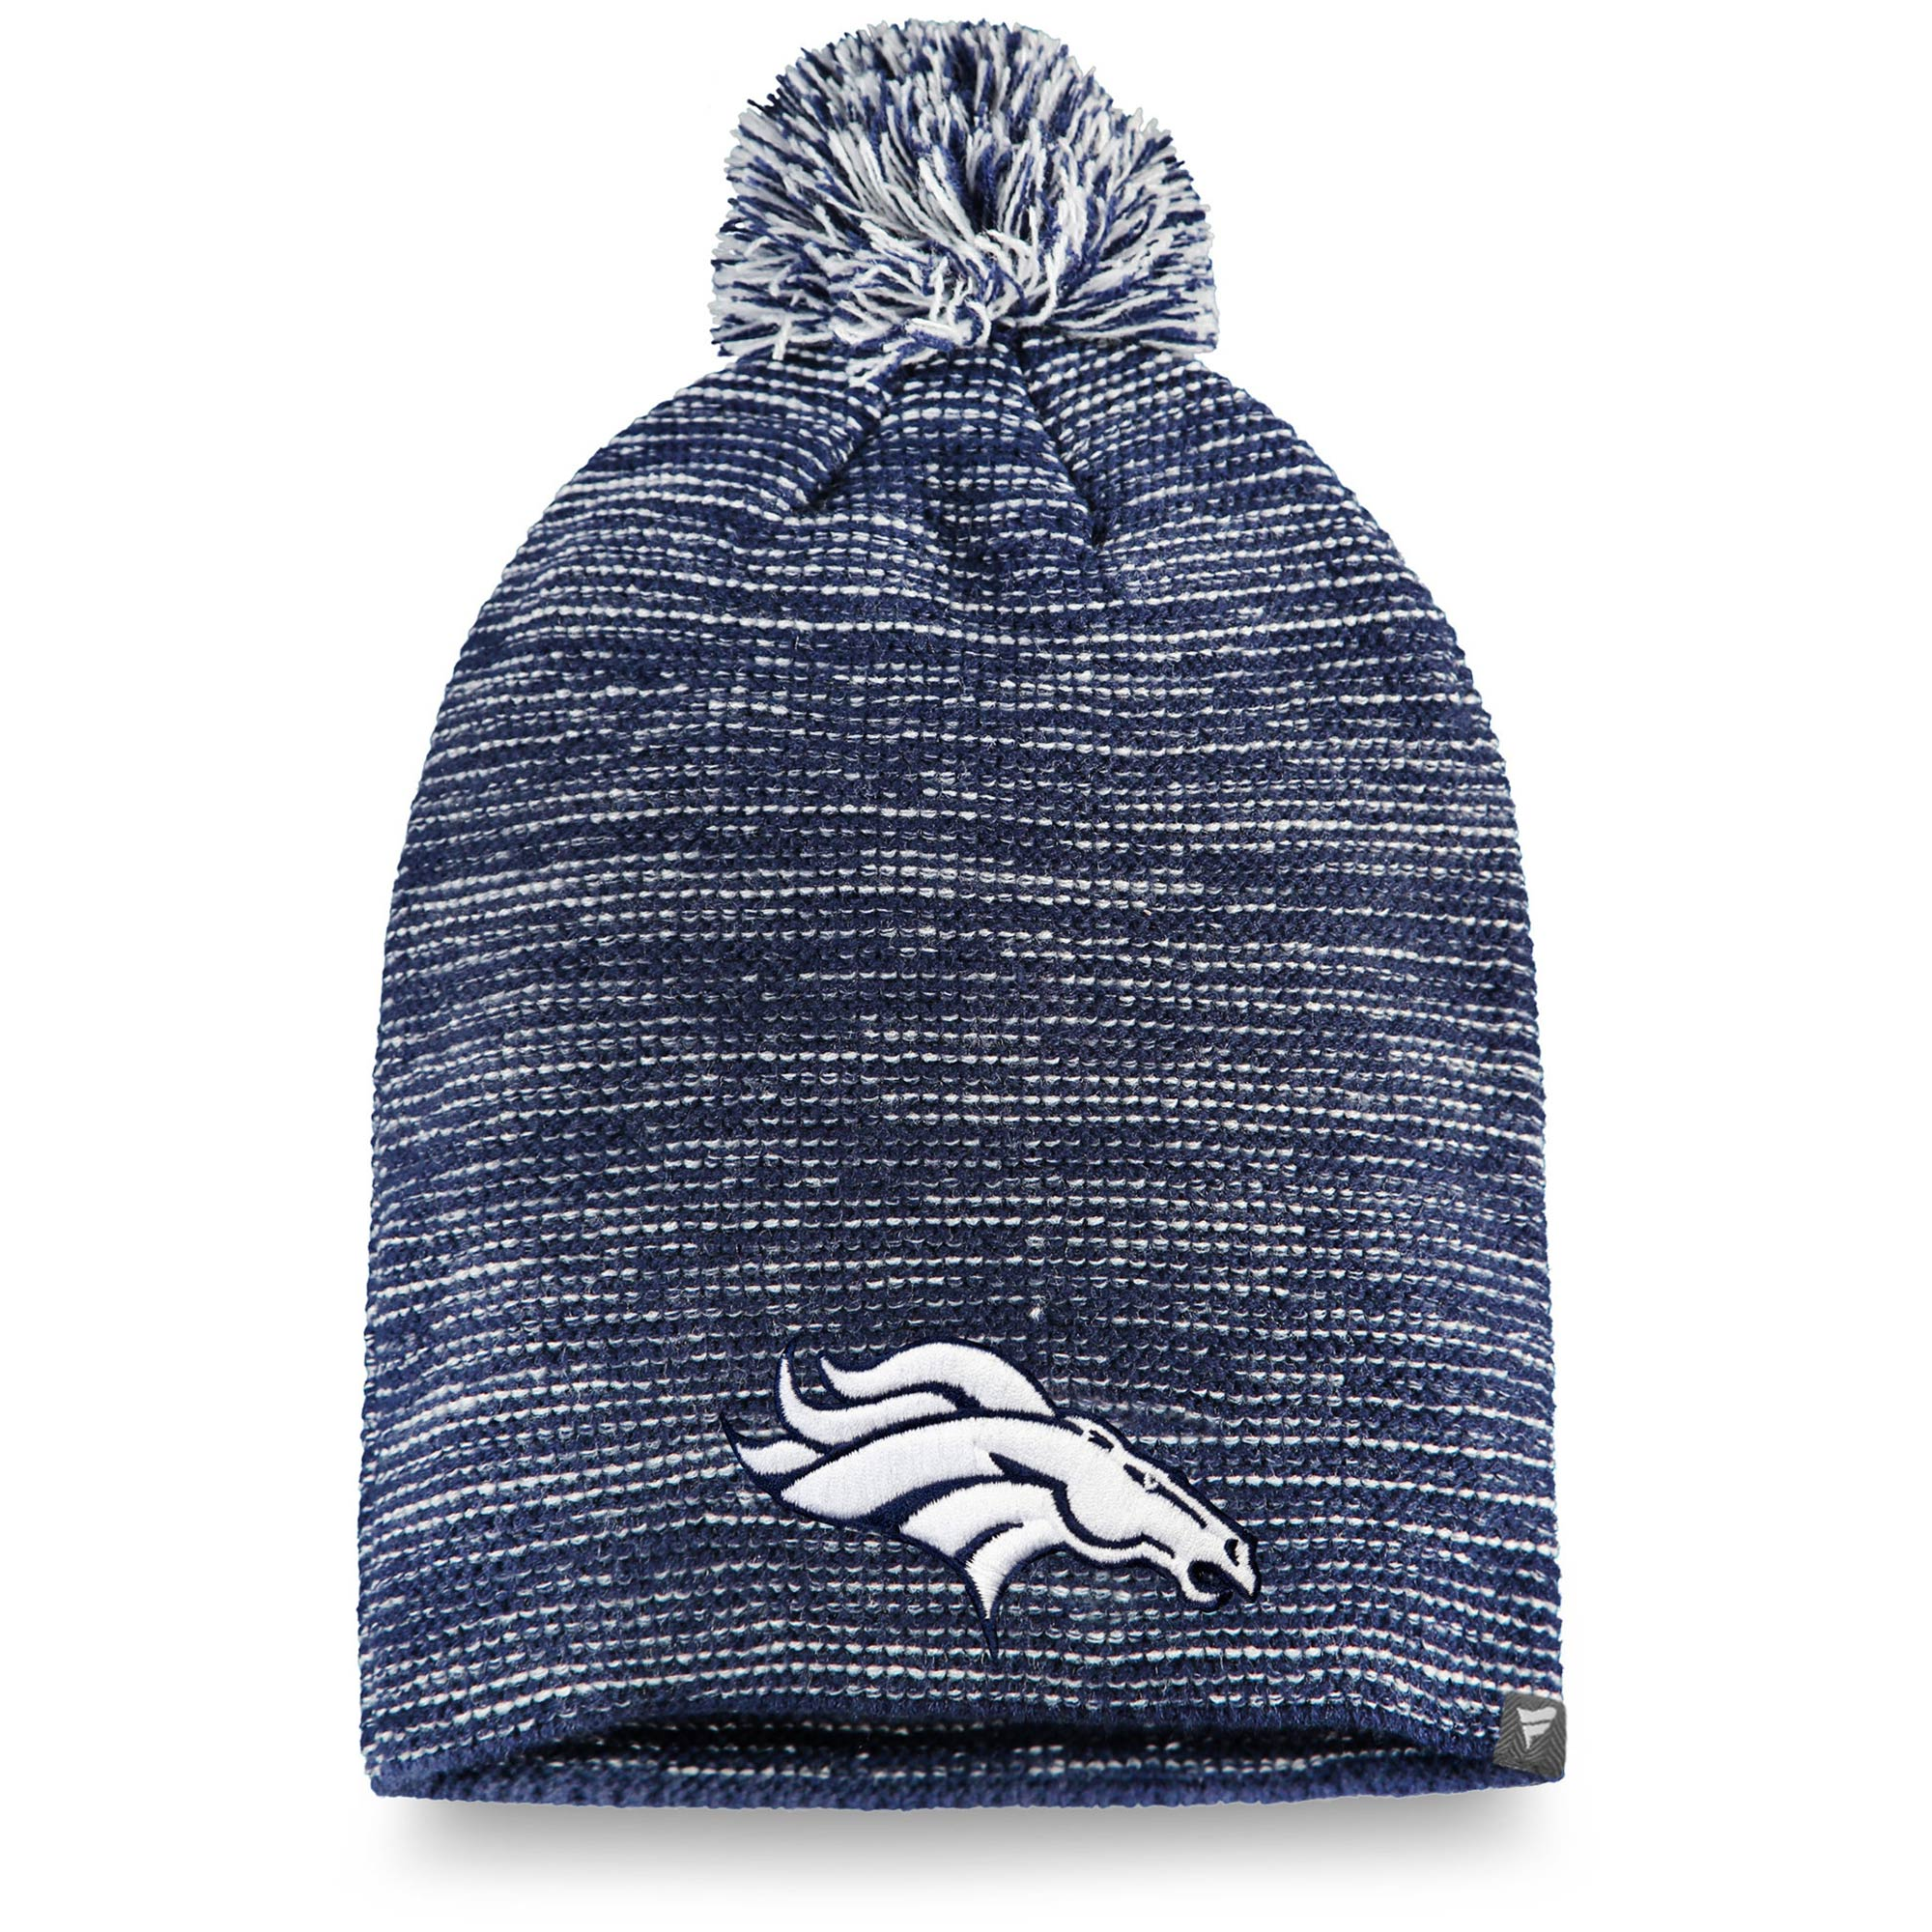 Denver Broncos NFL Pro Line by Fanatics Branded Women's Versalux Knit Beanie with Pom - Navy